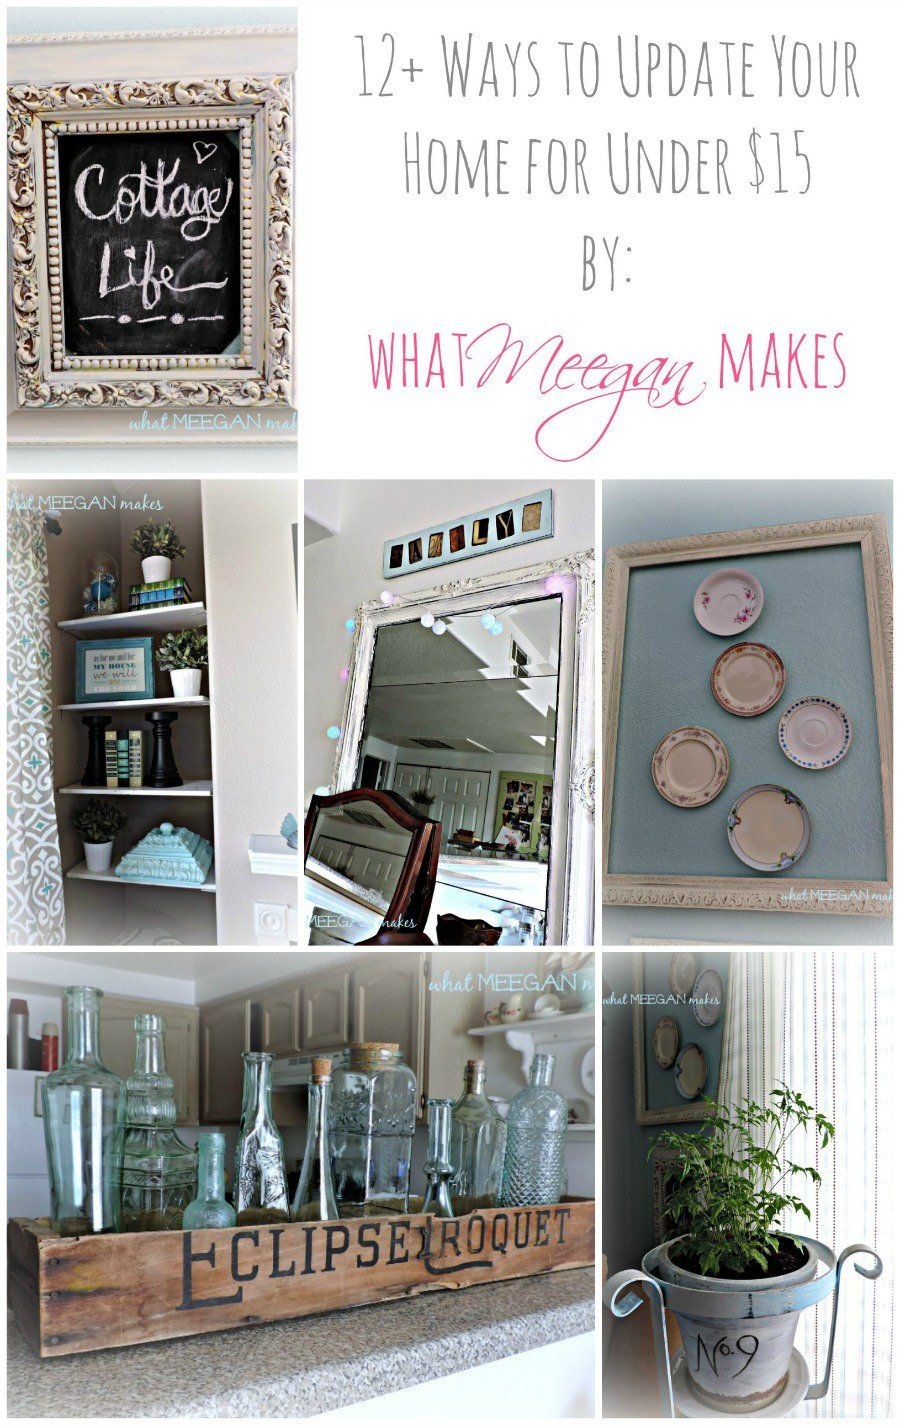 12+ Ways to Update Your Home for Under $15